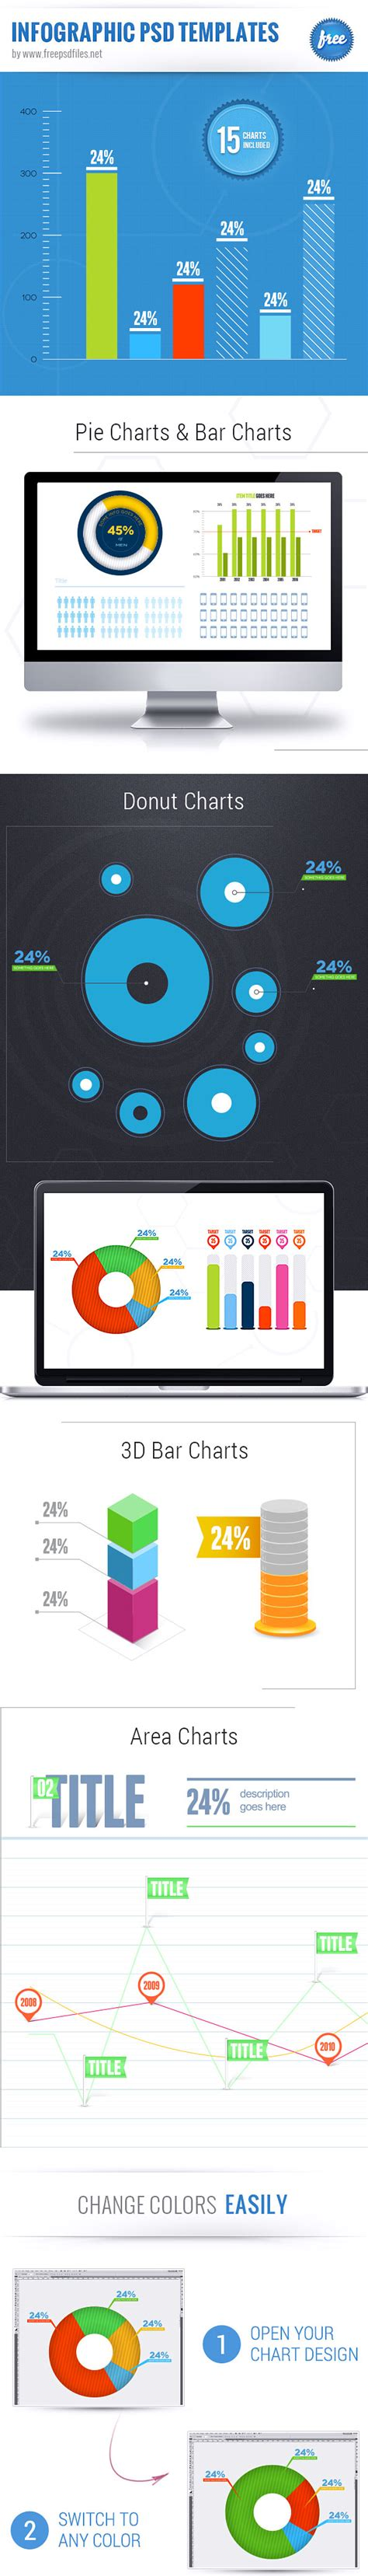 Infographic Psd Templates Free Psd Files Infographic Template Psd